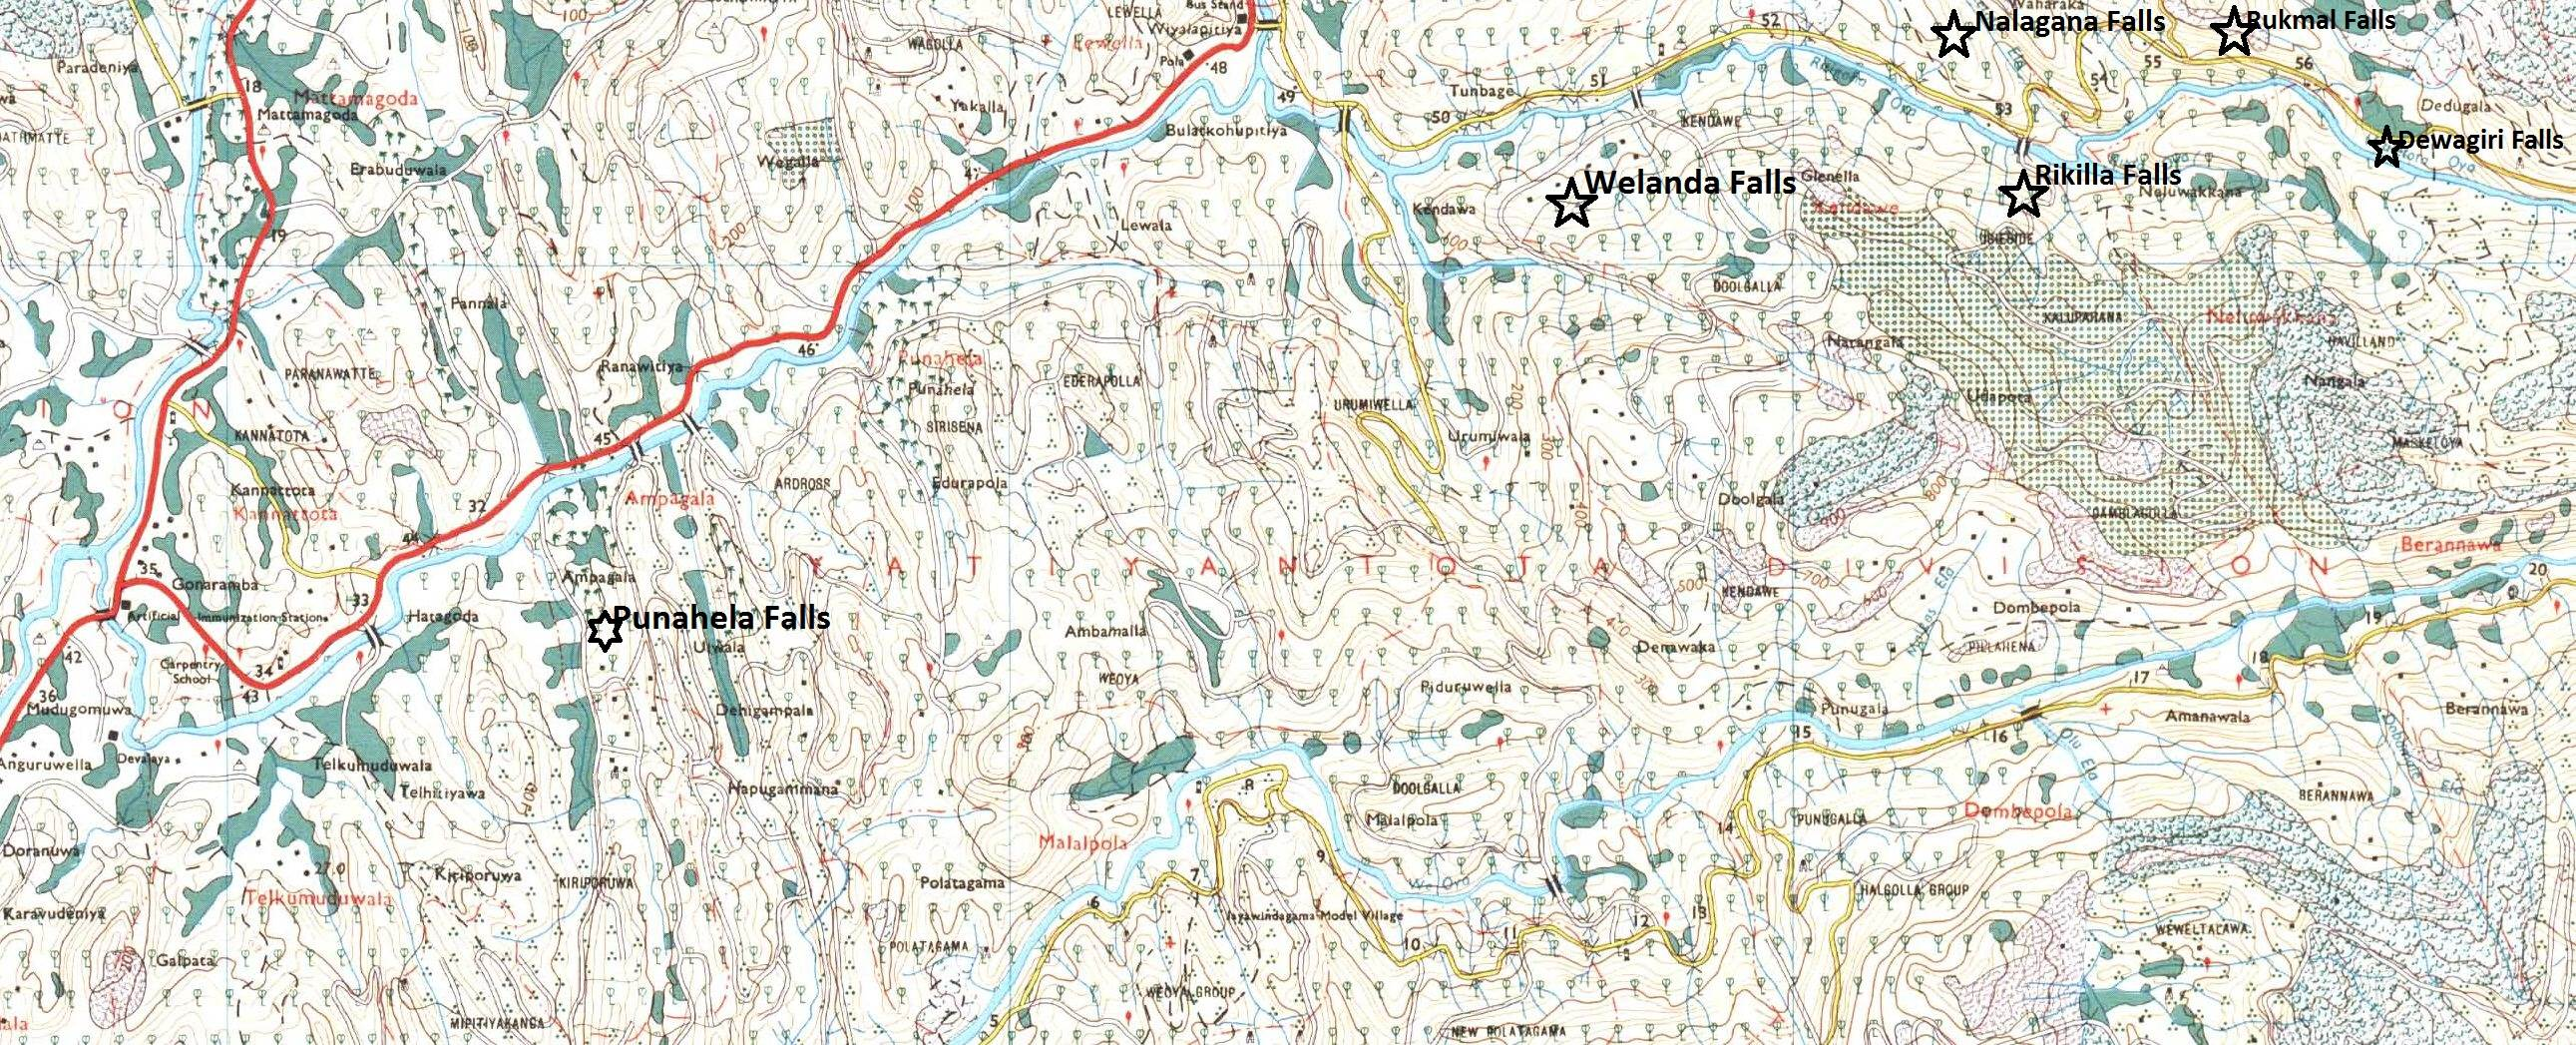 Approximate positions of waterfalls in Bulathkohupitiya-Dedugala road